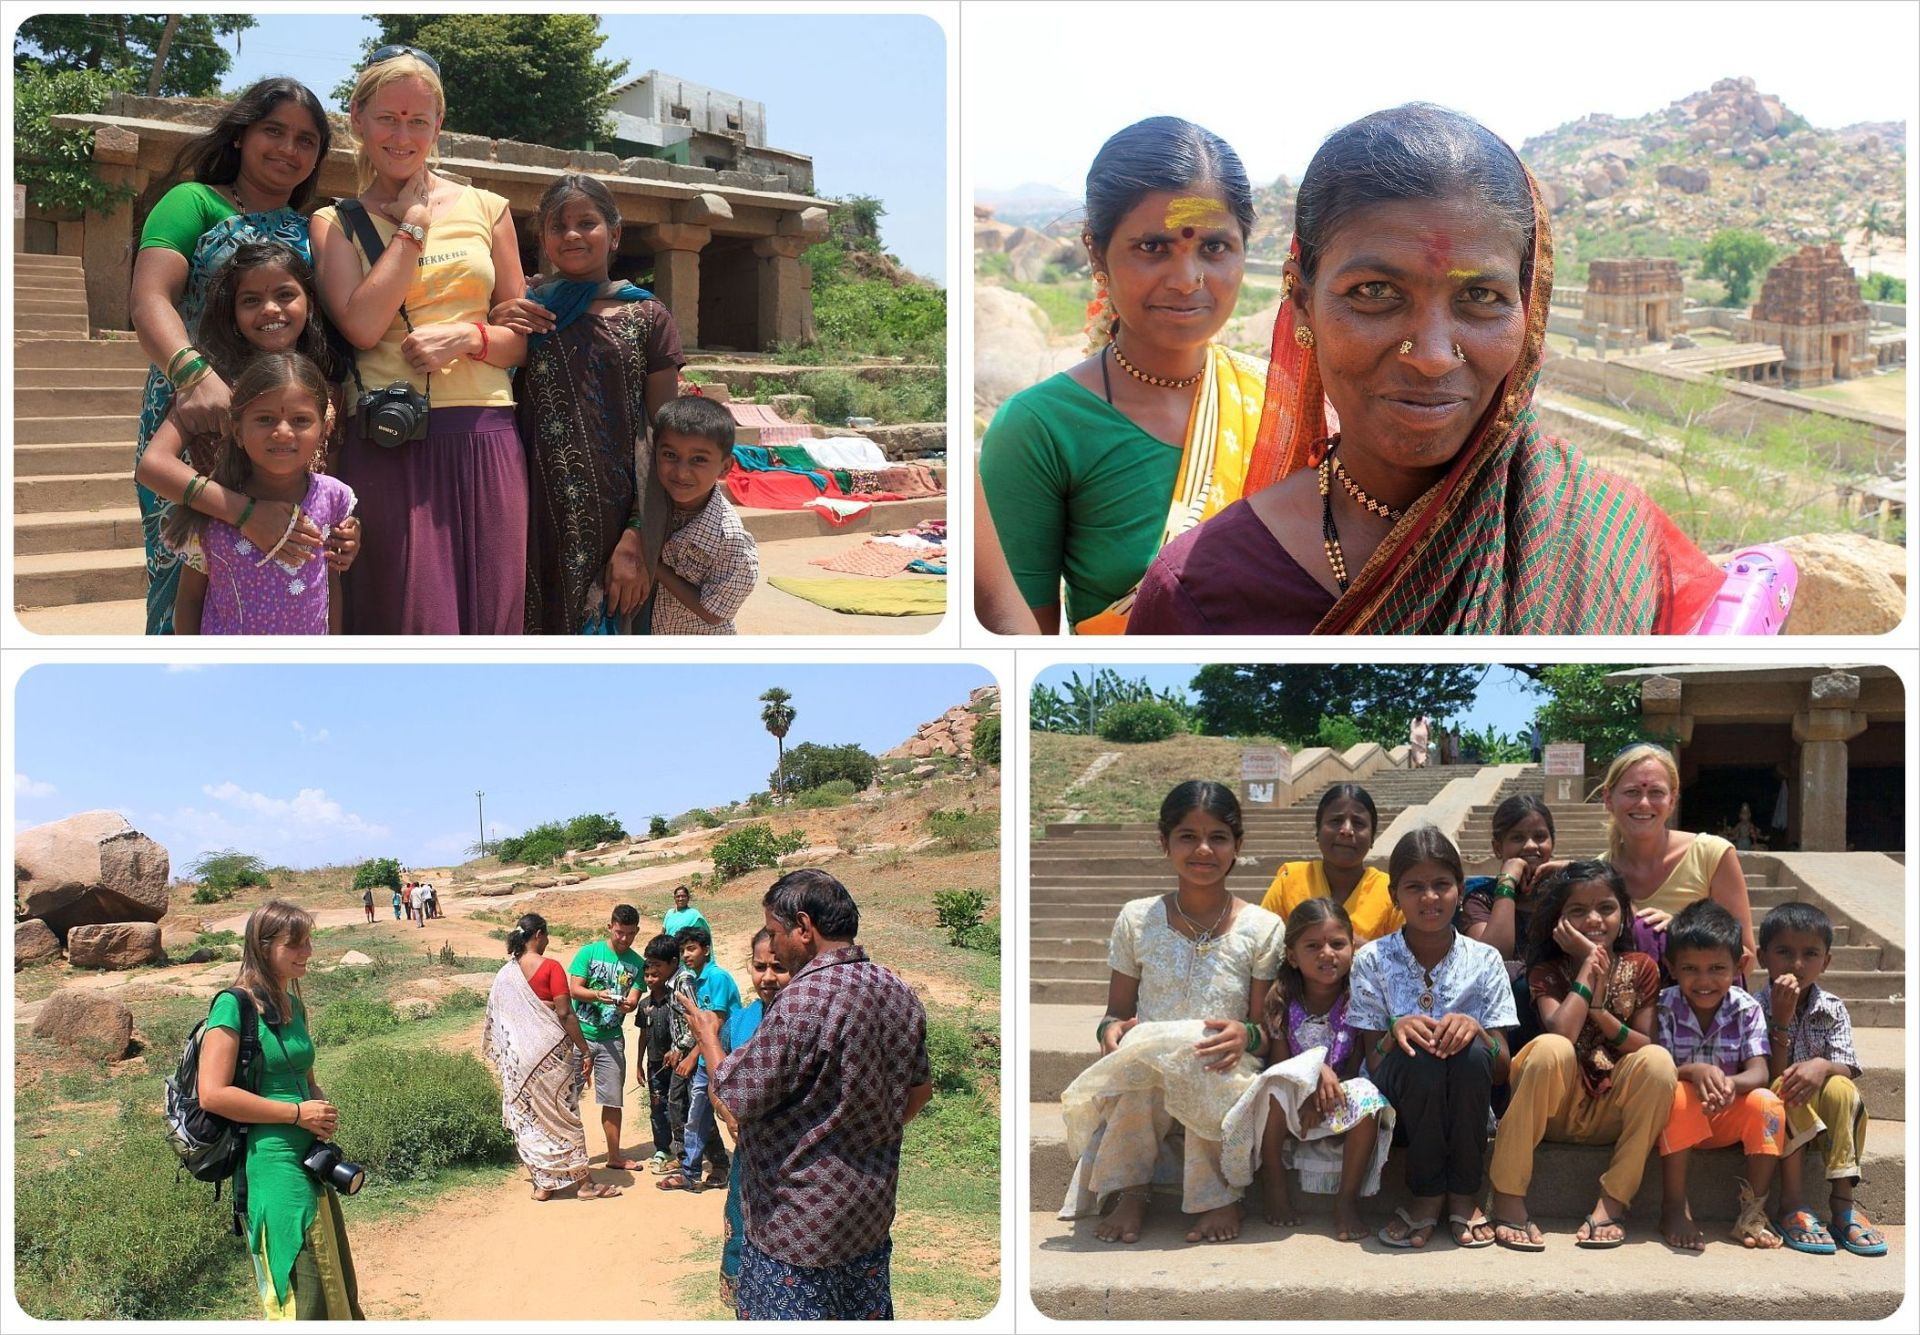 Meeting Indian families in Hampi